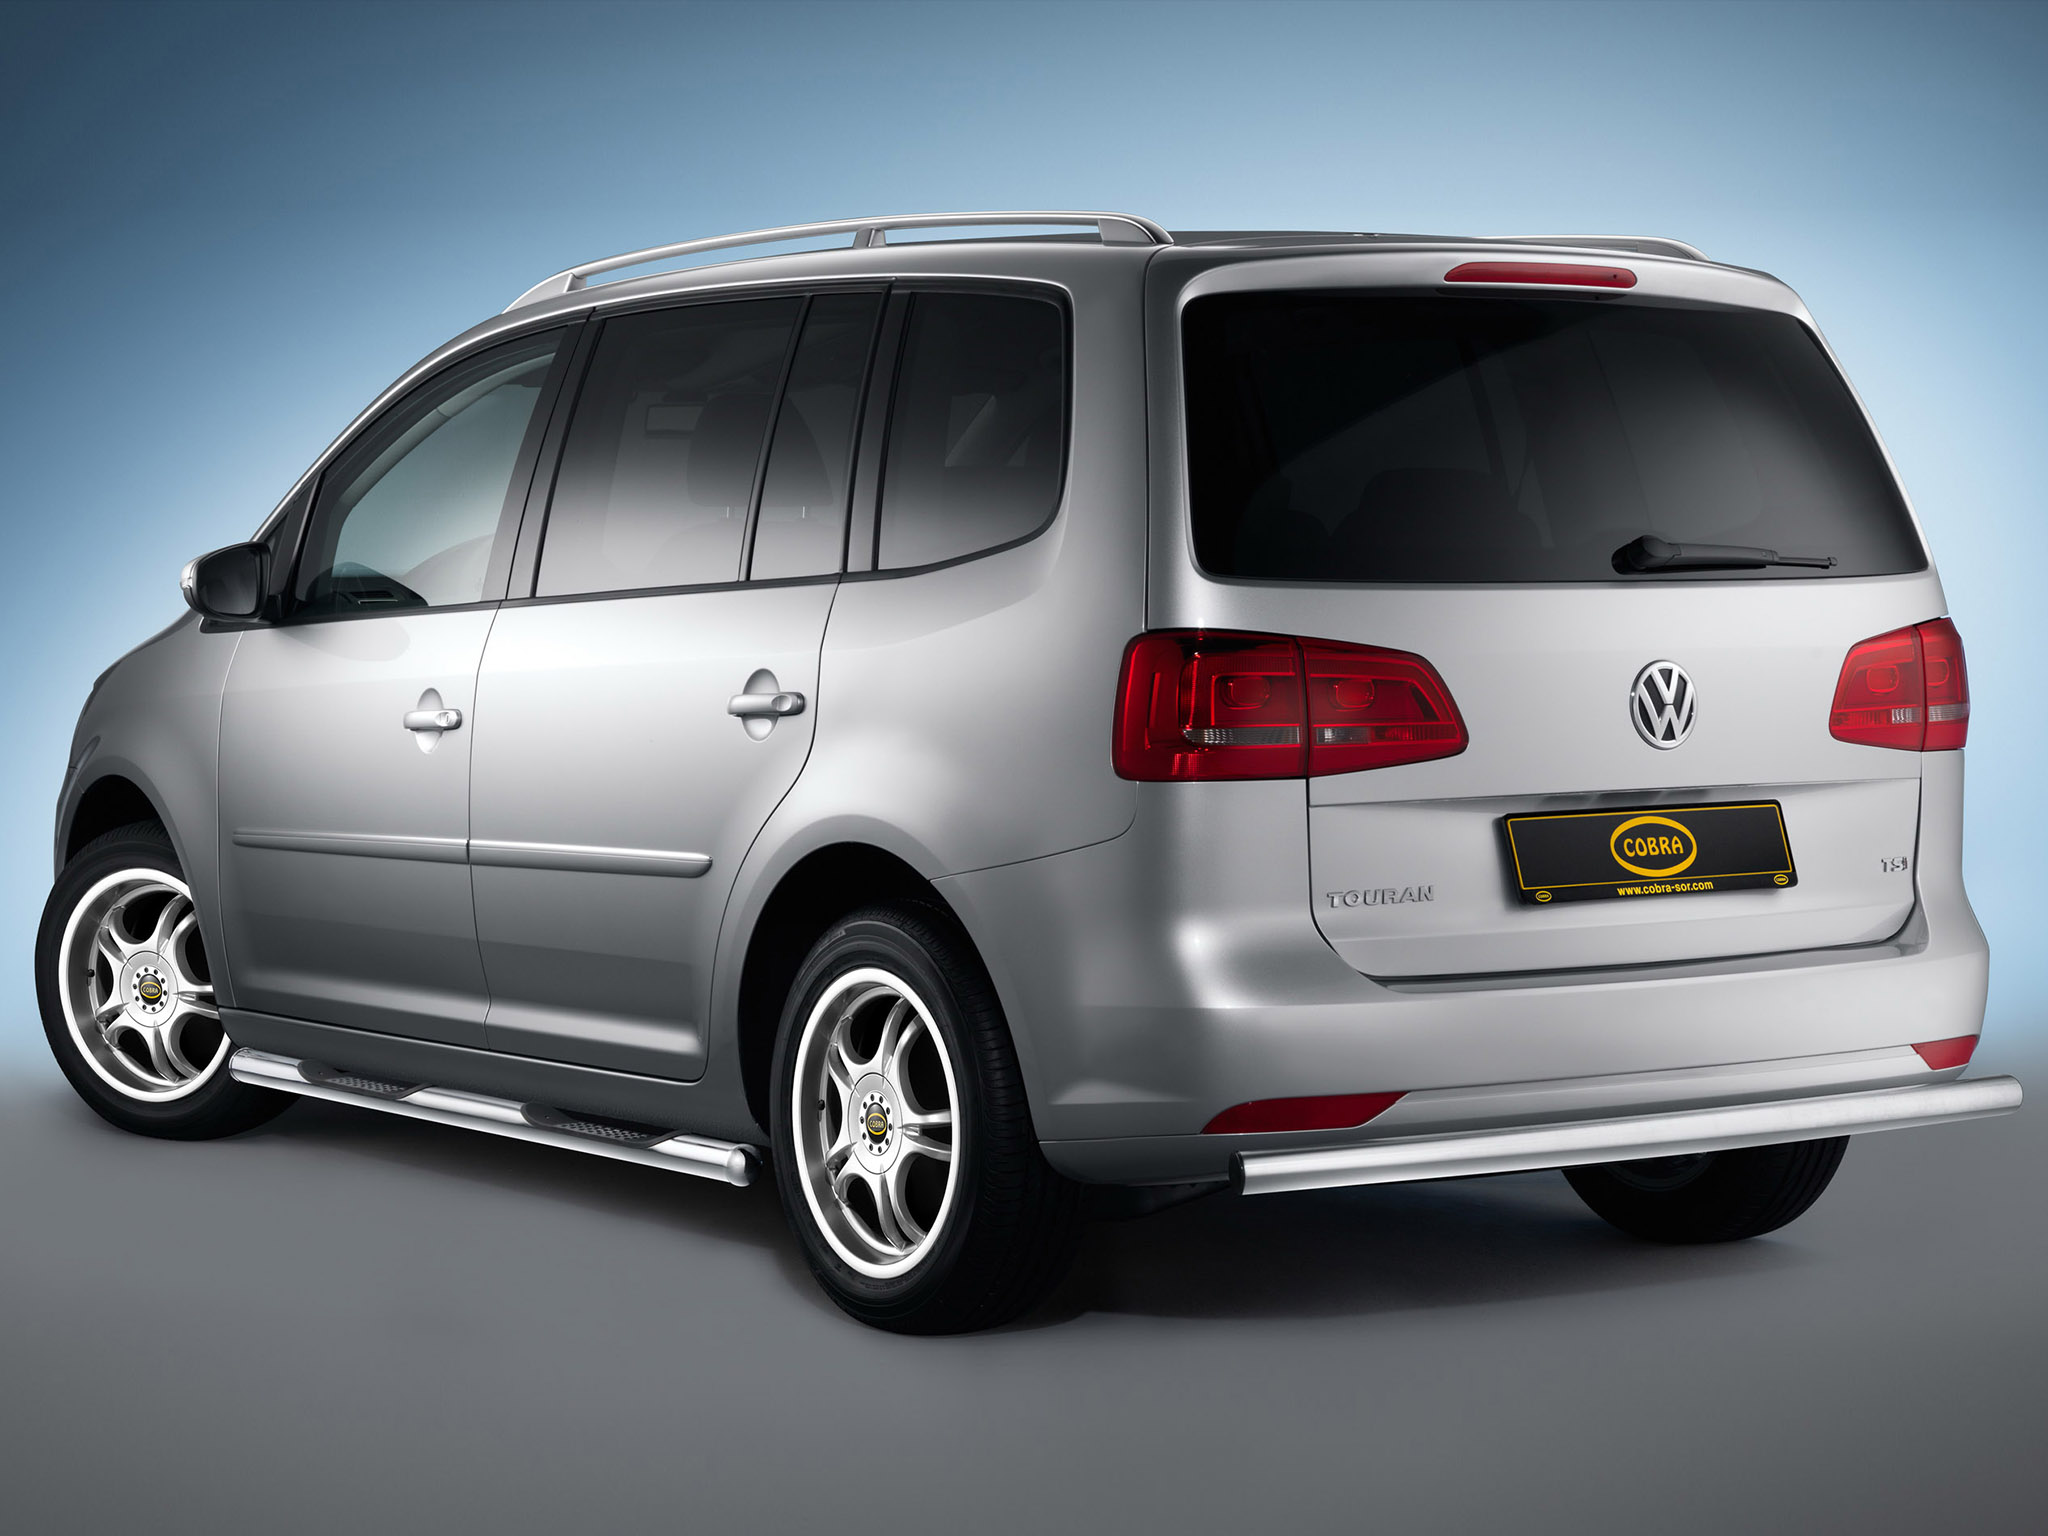 cobra volkswagen touran 2011 cobra volkswagen touran 2011 photo 03 car in pictures car photo. Black Bedroom Furniture Sets. Home Design Ideas